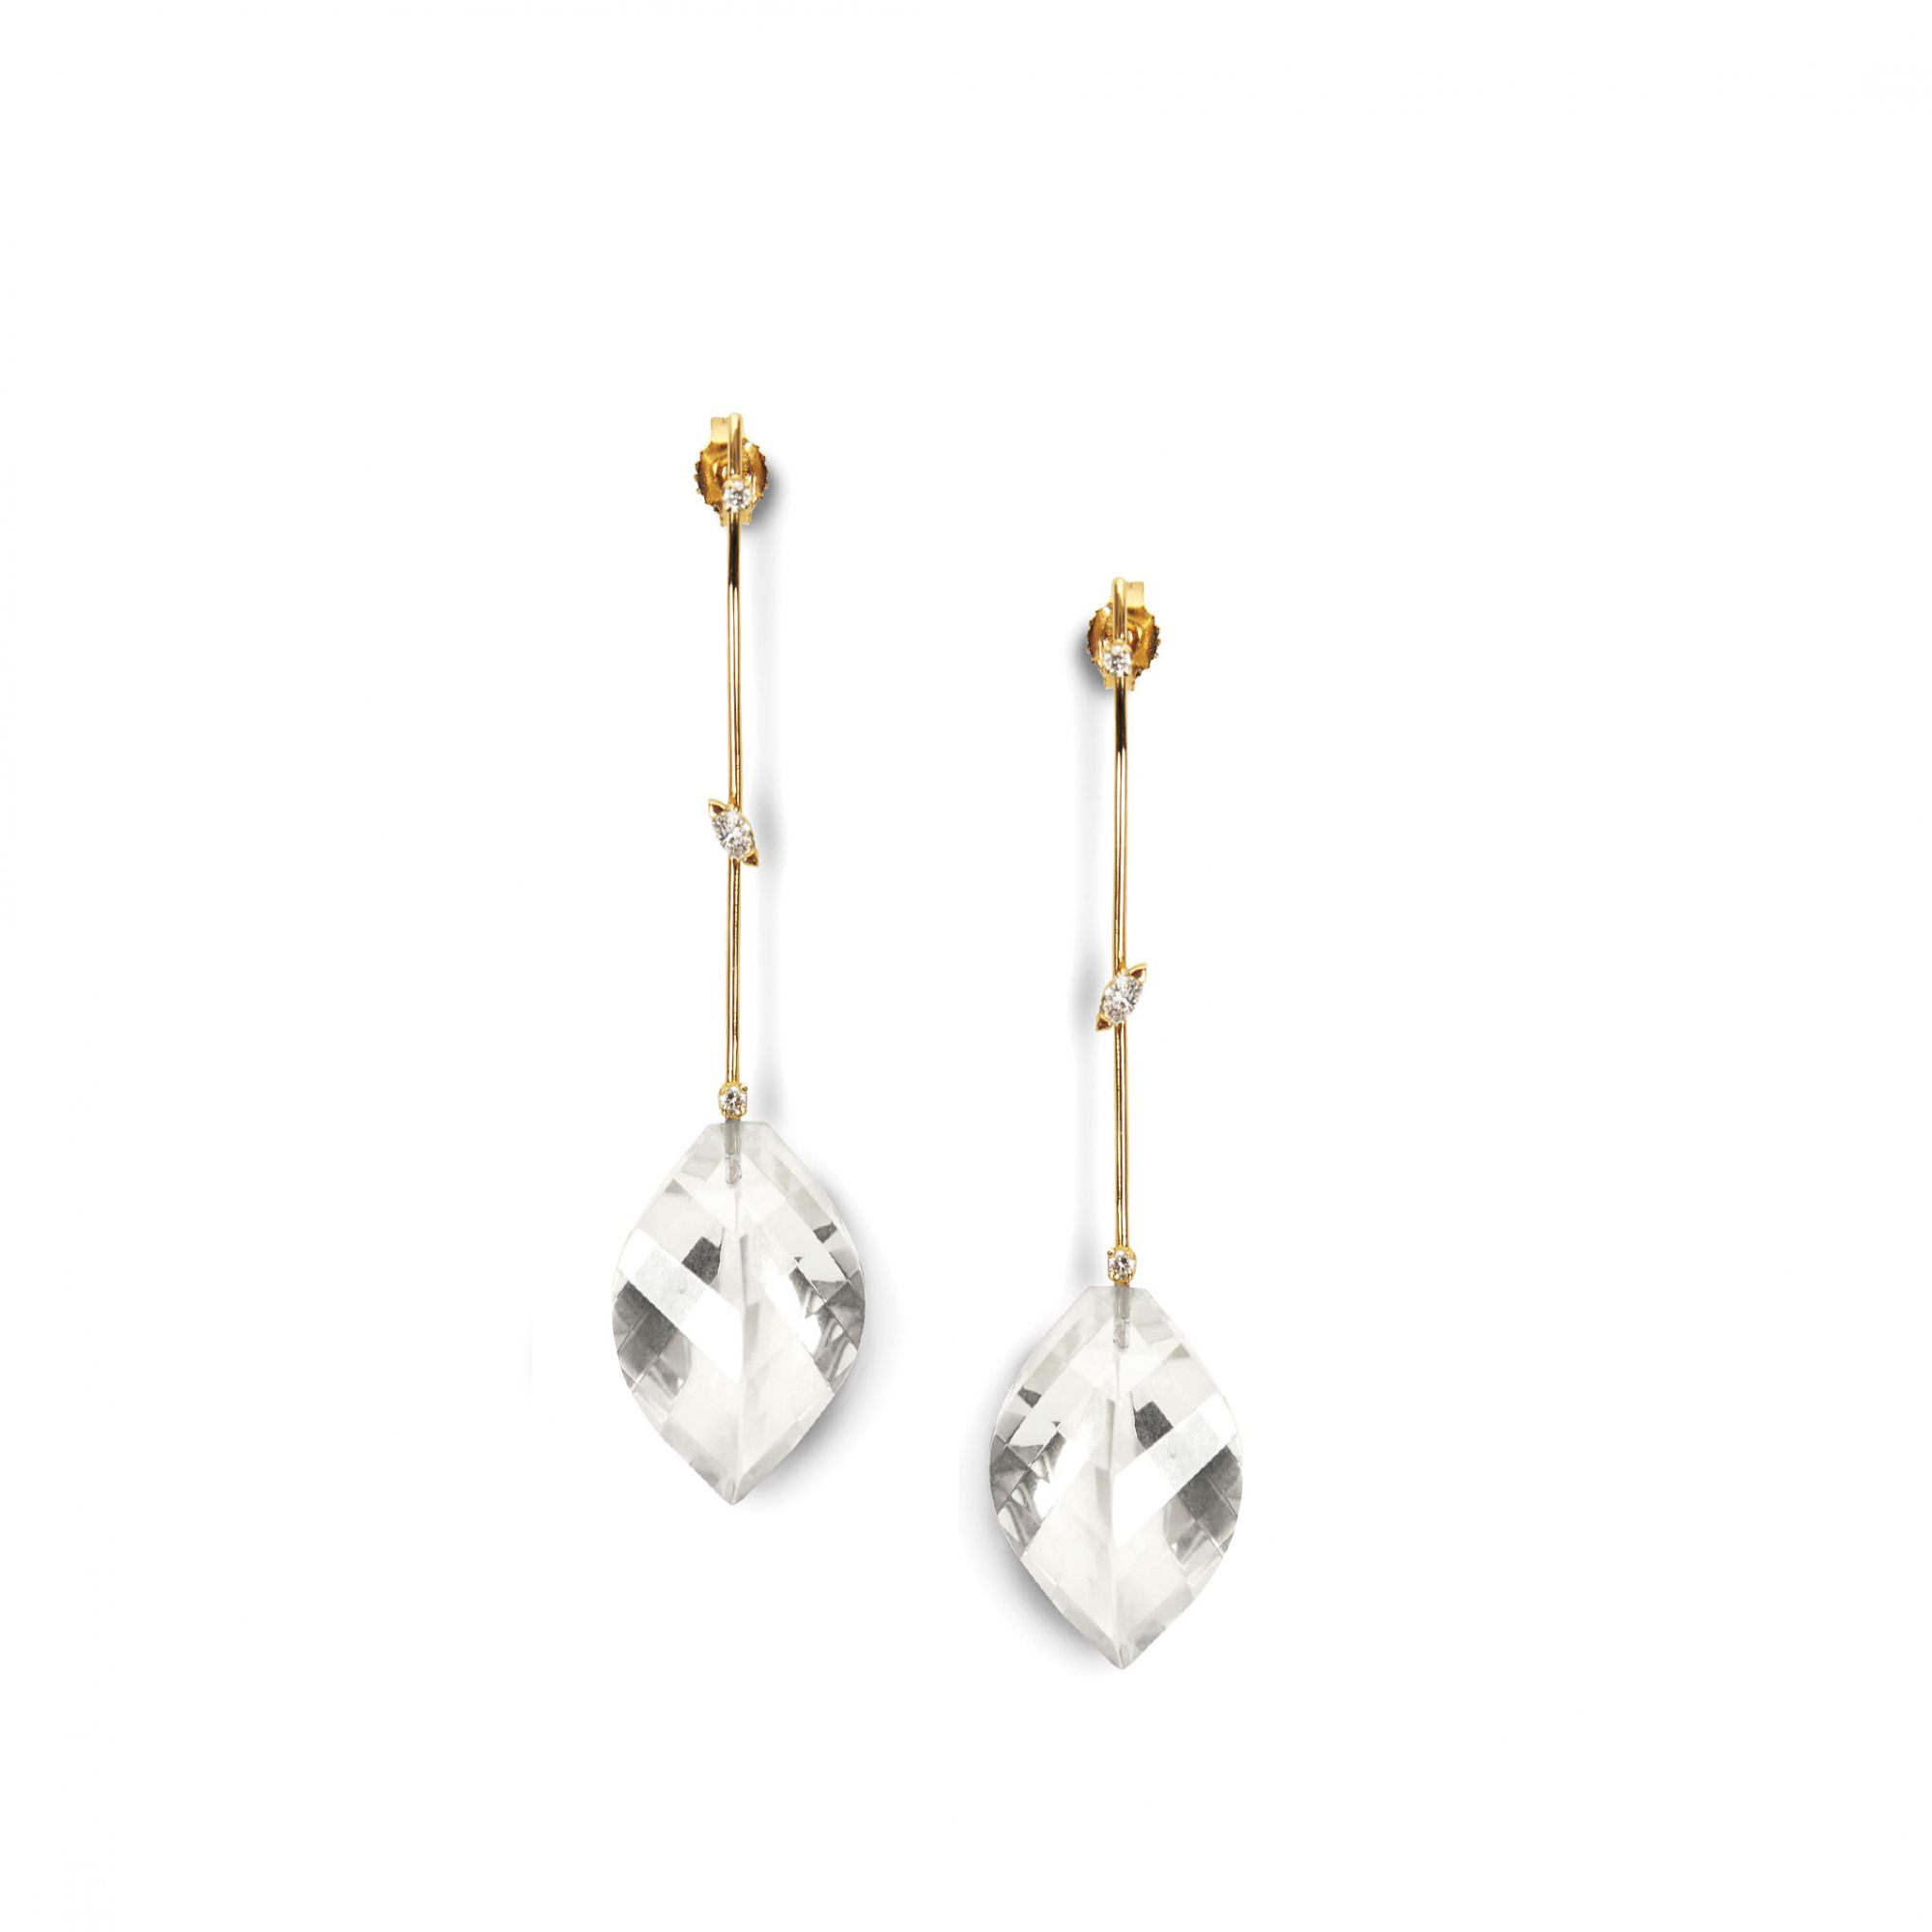 'Amo' earrings with marquise Yellow gold and diamond earrings